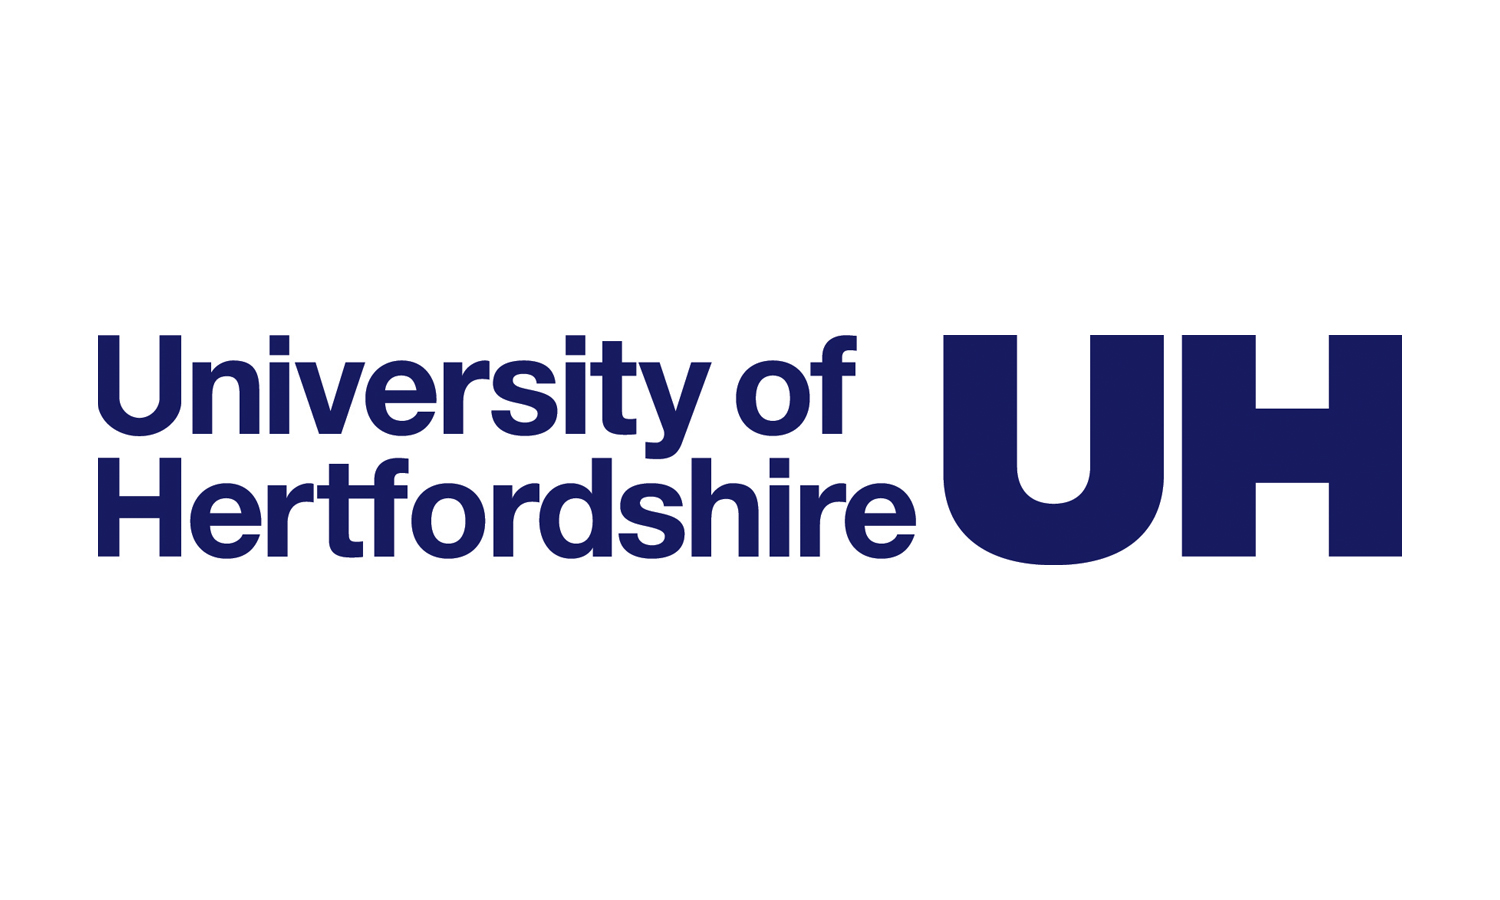 University of Hertfordshire img-responsive